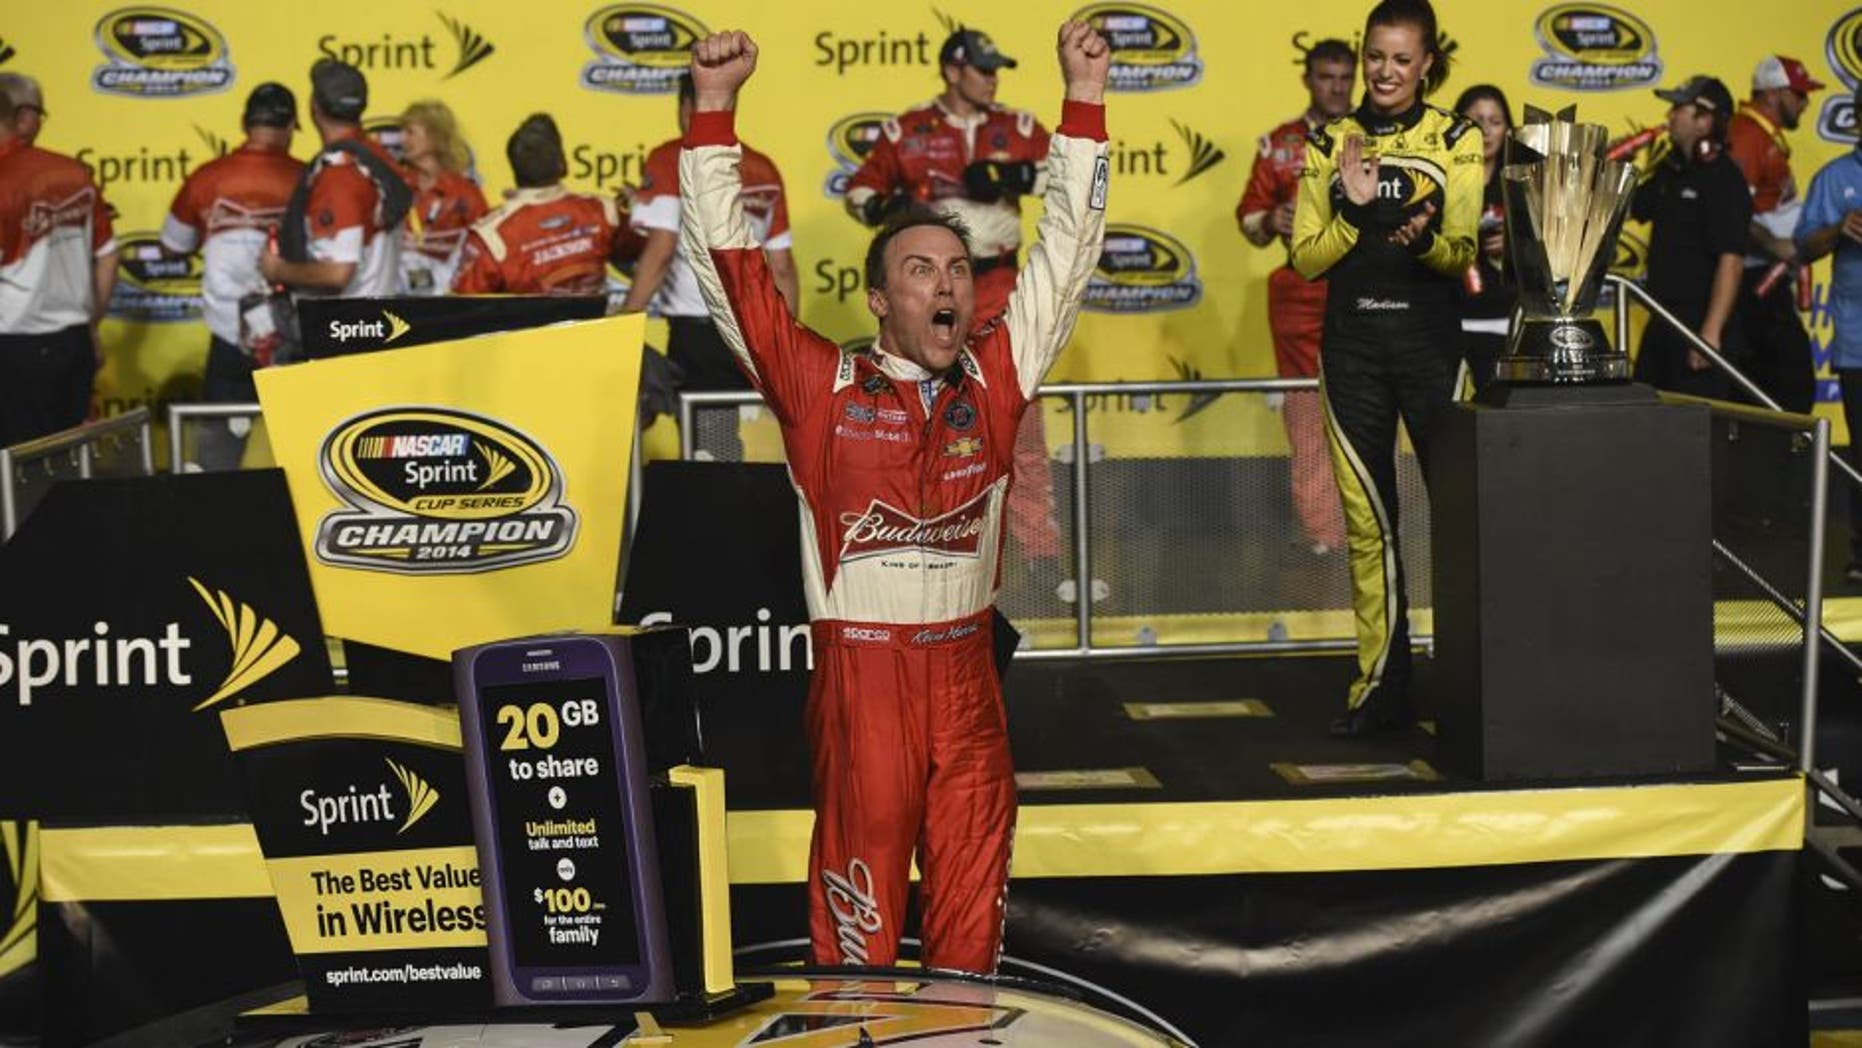 HOMESTEAD, FL - NOVEMBER 16: Kevin Harvick, driver of the #4 Budweiser Chevrolet, celebrates in victory lane after winning during the NASCAR Sprint Cup Series Ford EcoBoost 400 at Homestead-Miami Speedway on November 16, 2014 in Homestead, Florida.